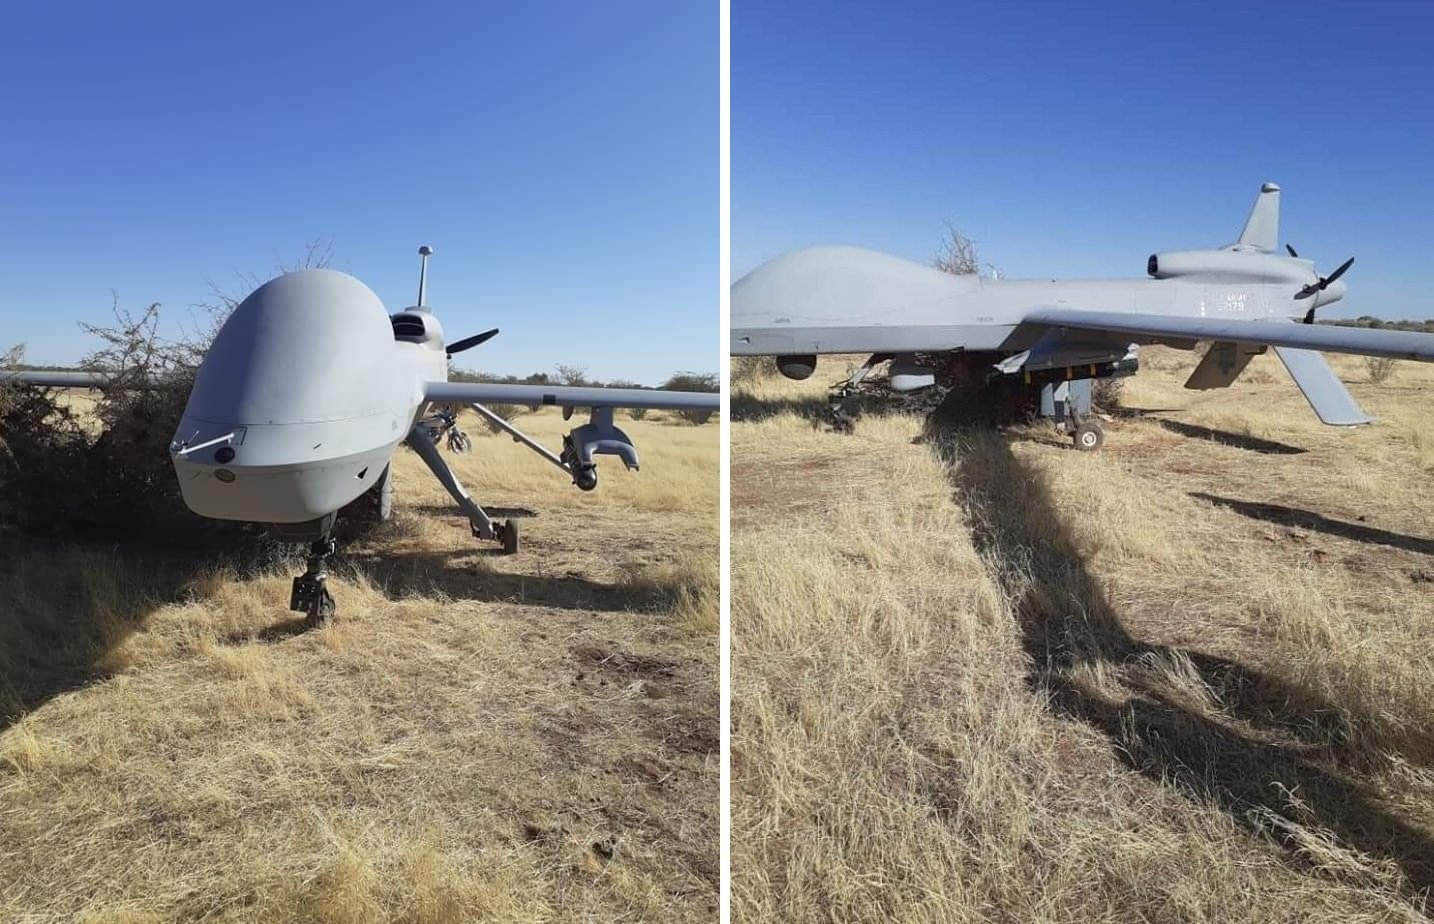 U.S. Military MQ-1C drone performed emergency touchdown in Niger